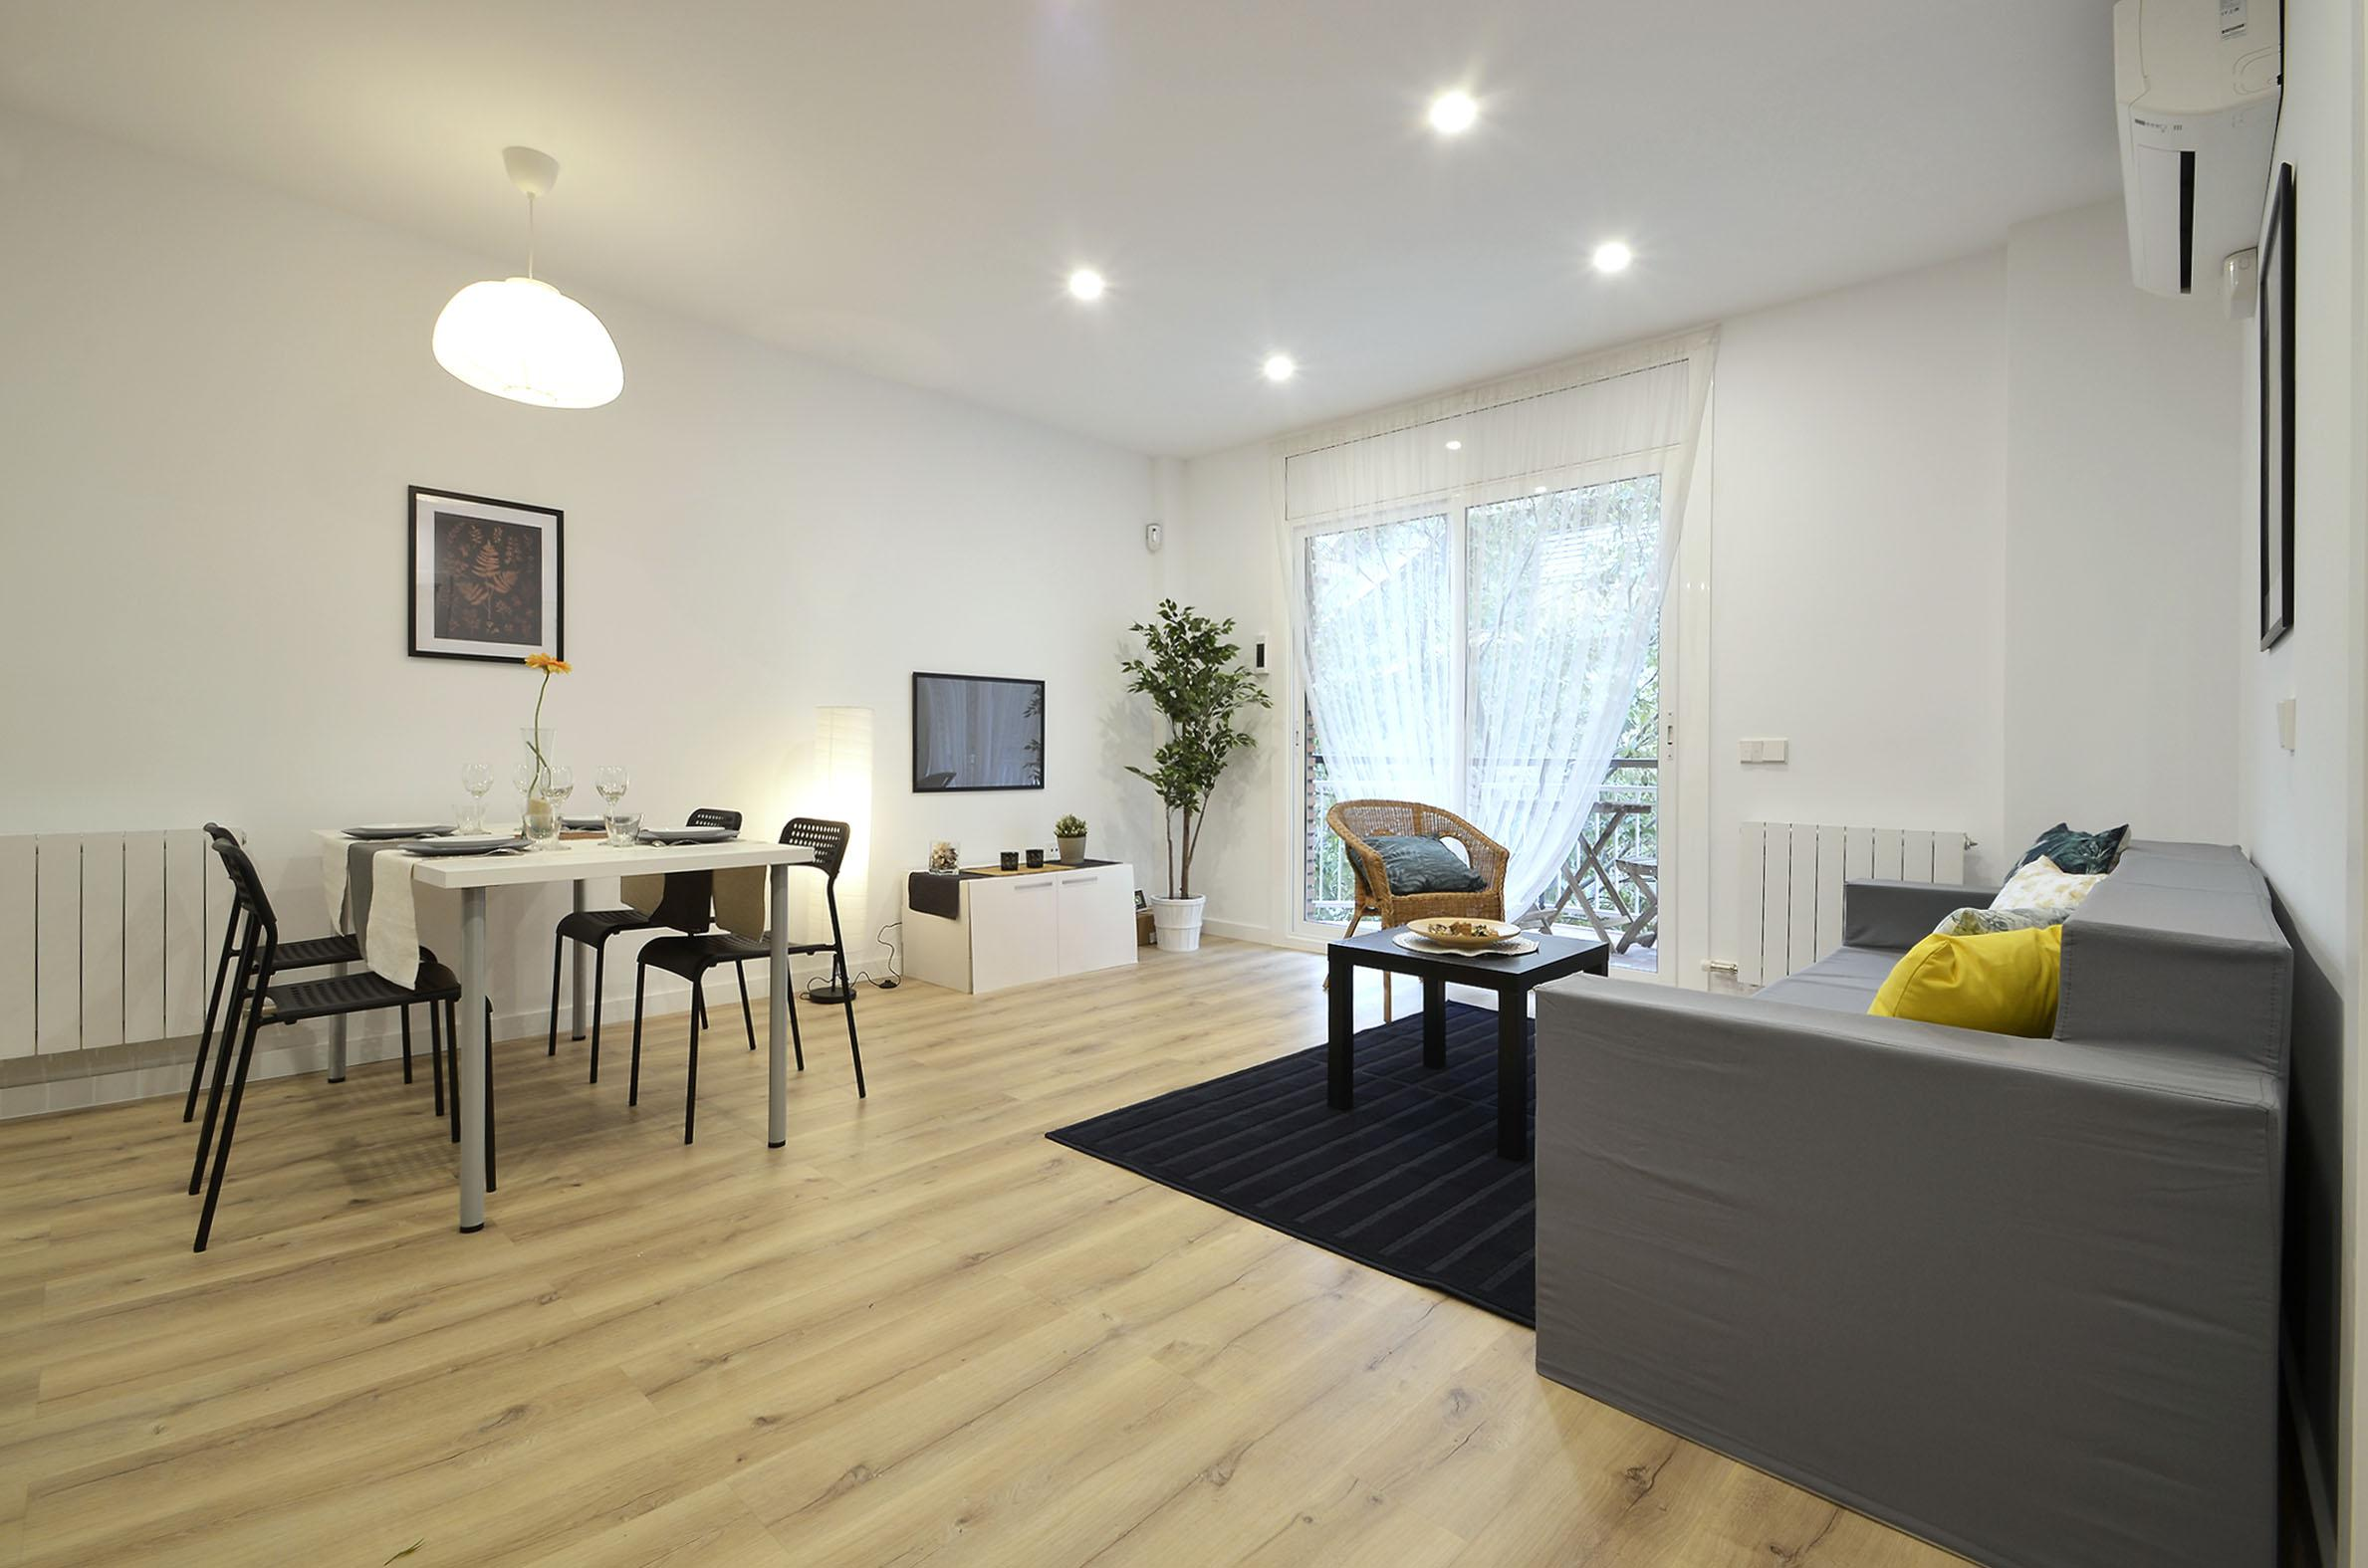 245687 Flat for sale in Eixample, Fort Pienc 8